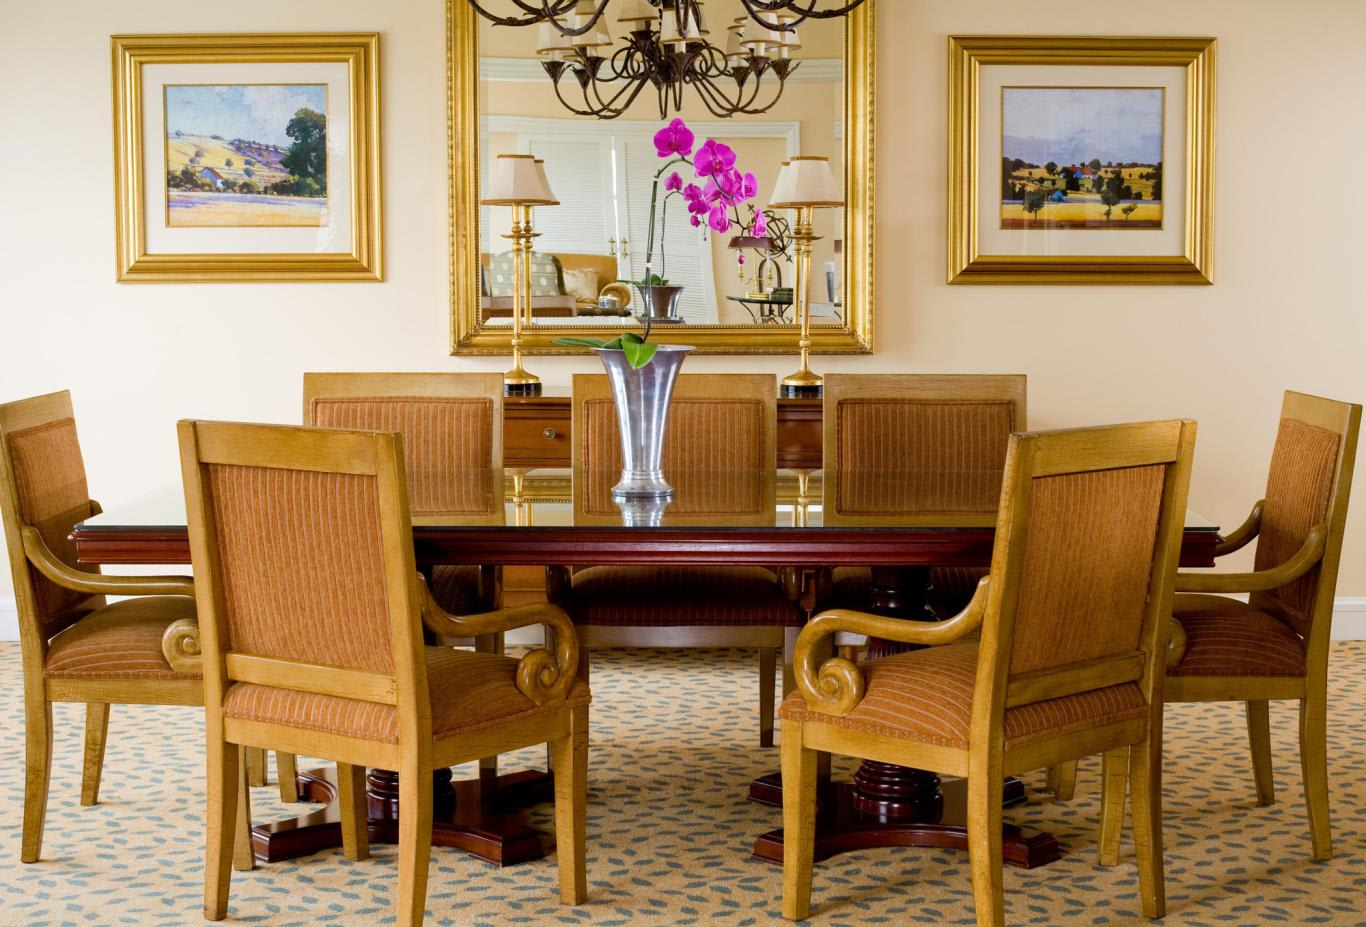 Lions-Head-Suite-Dining-Room